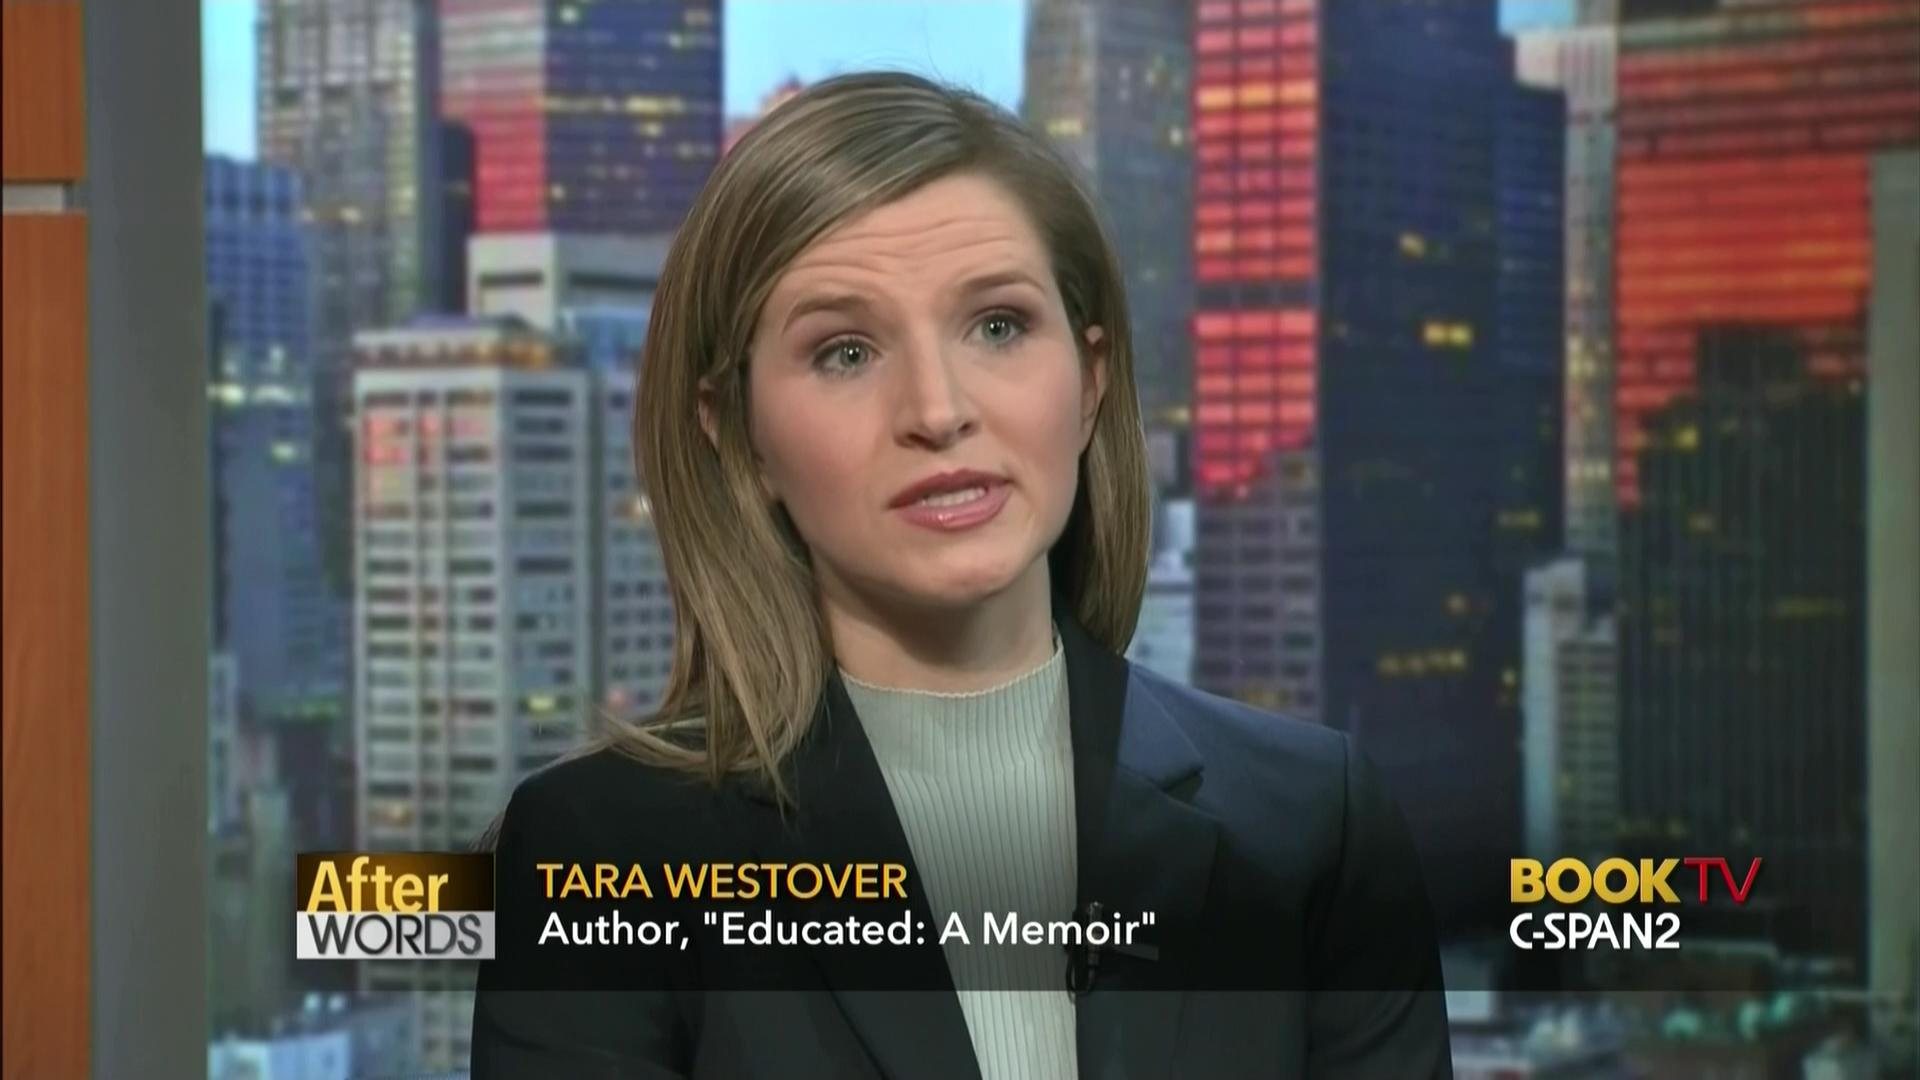 After Words with Tara Westover